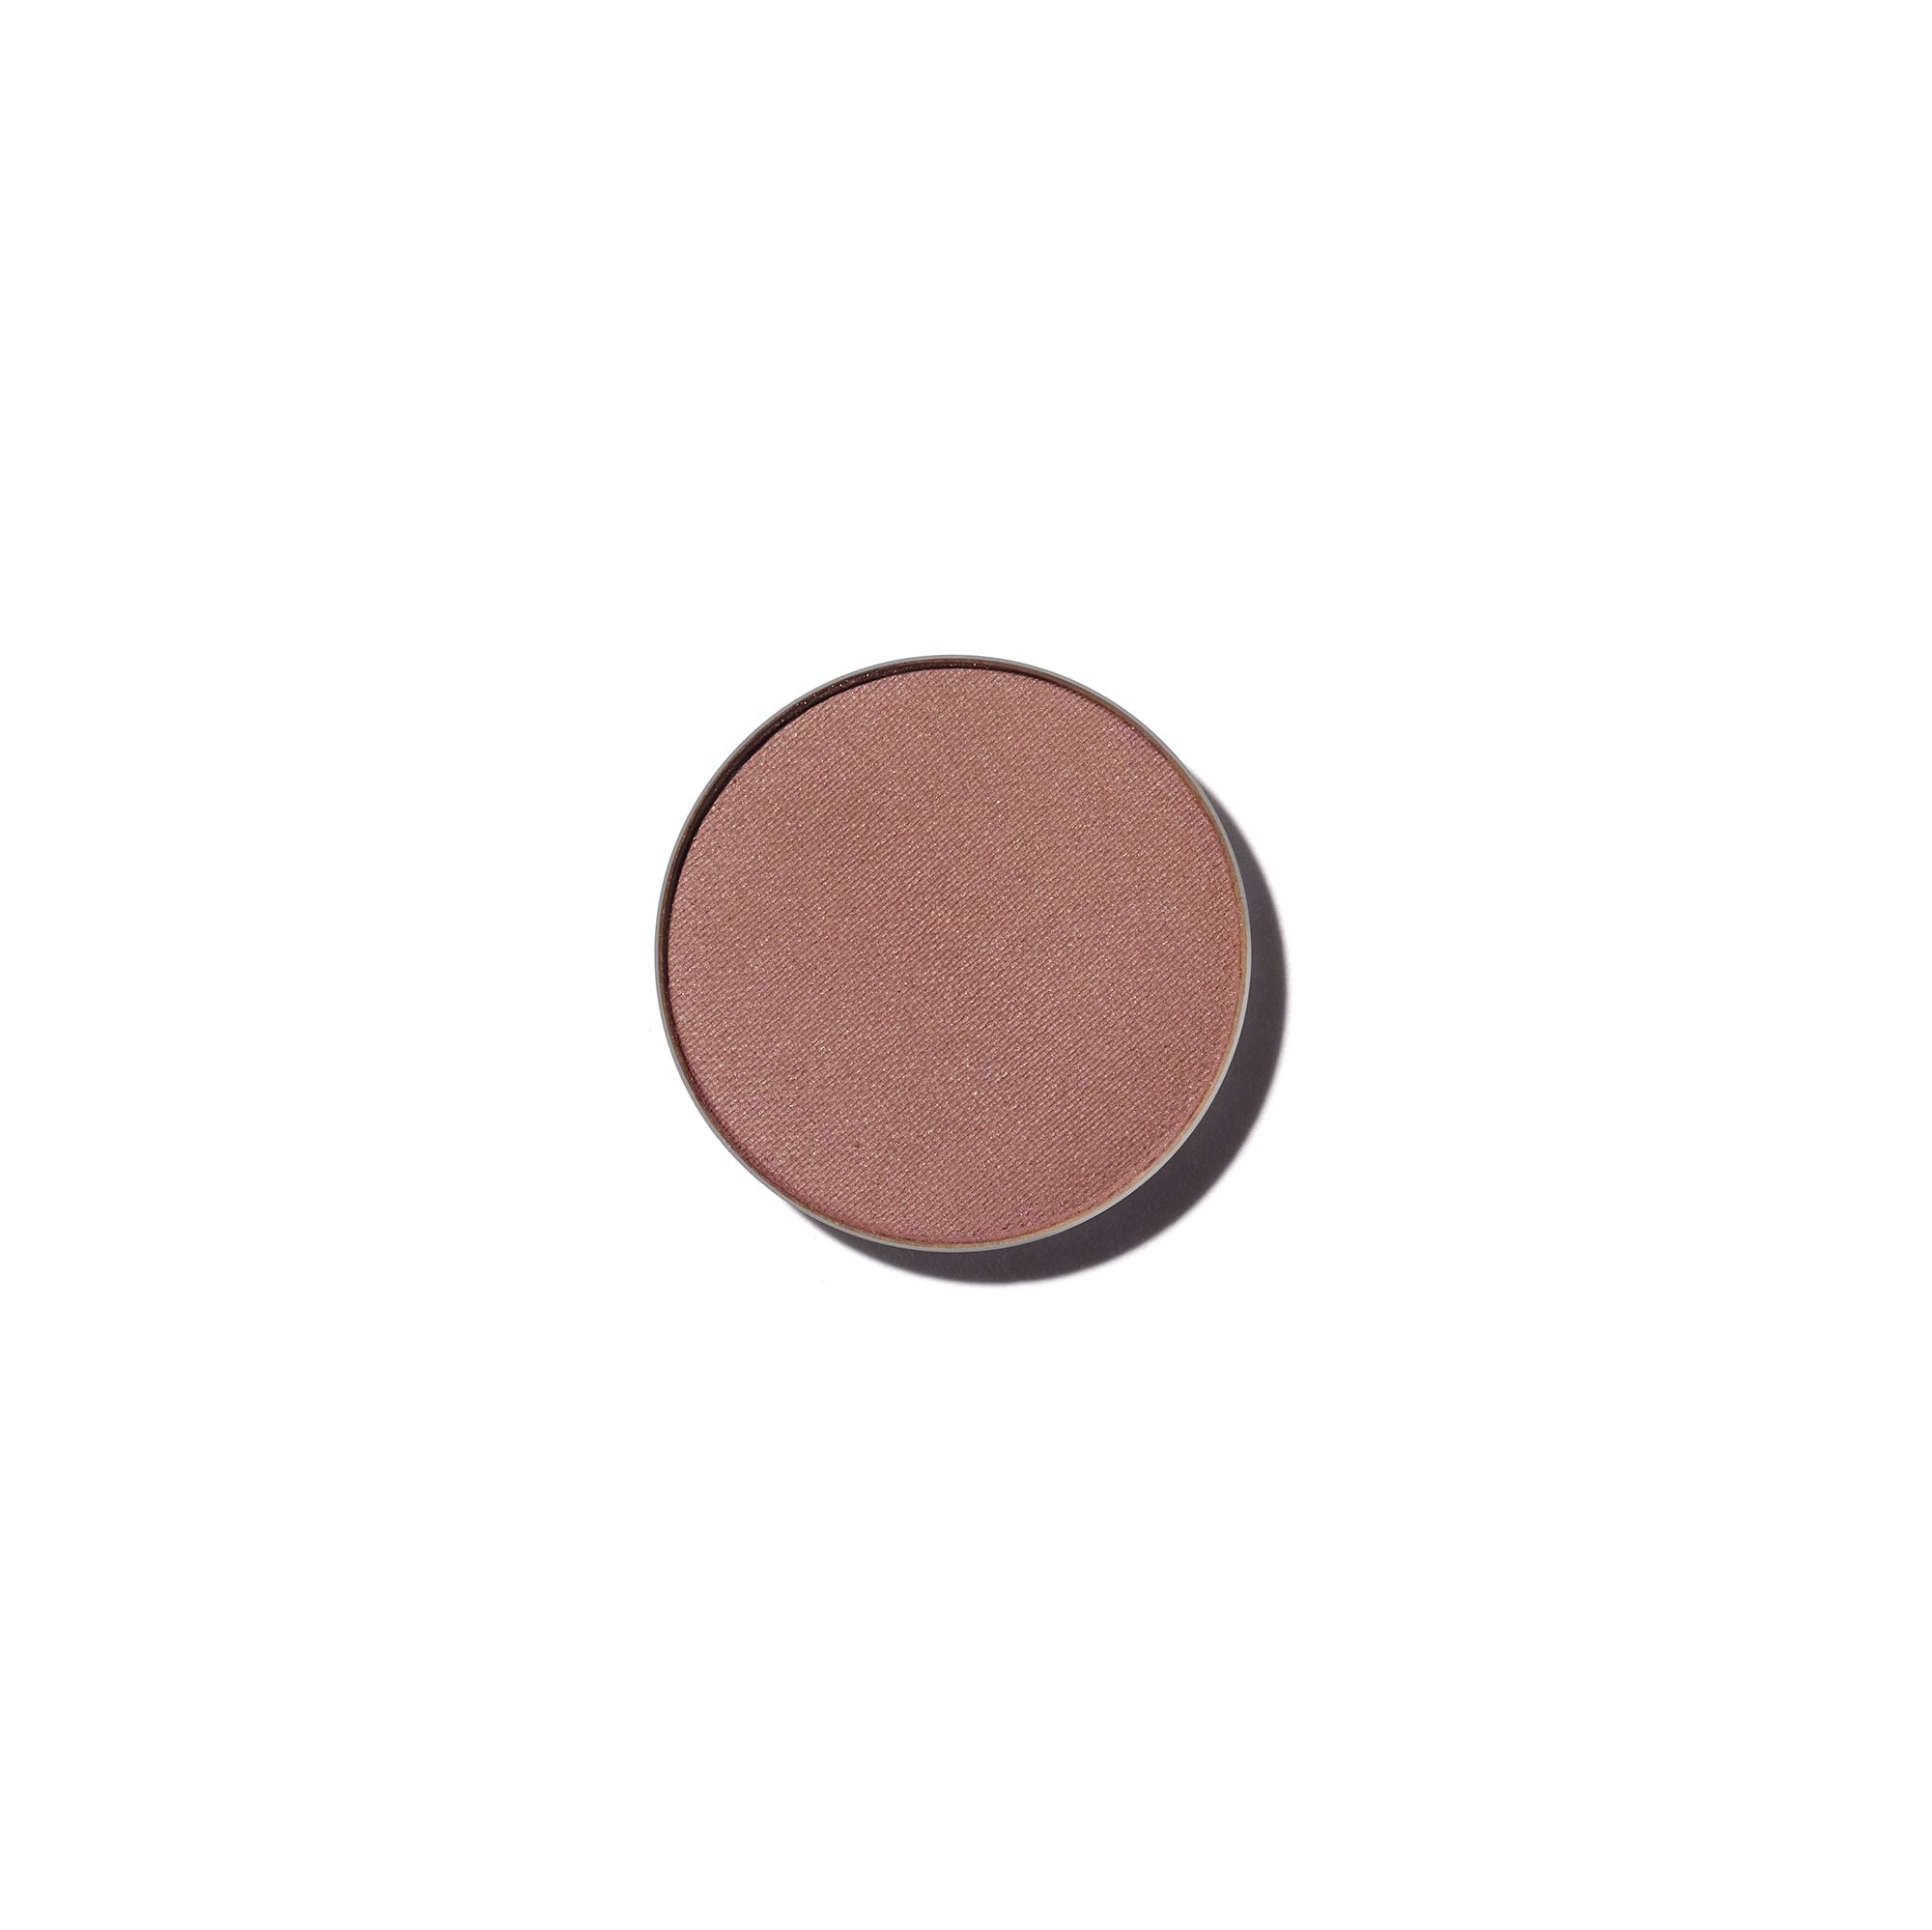 Eyeshadow Singles - Dusty Rose